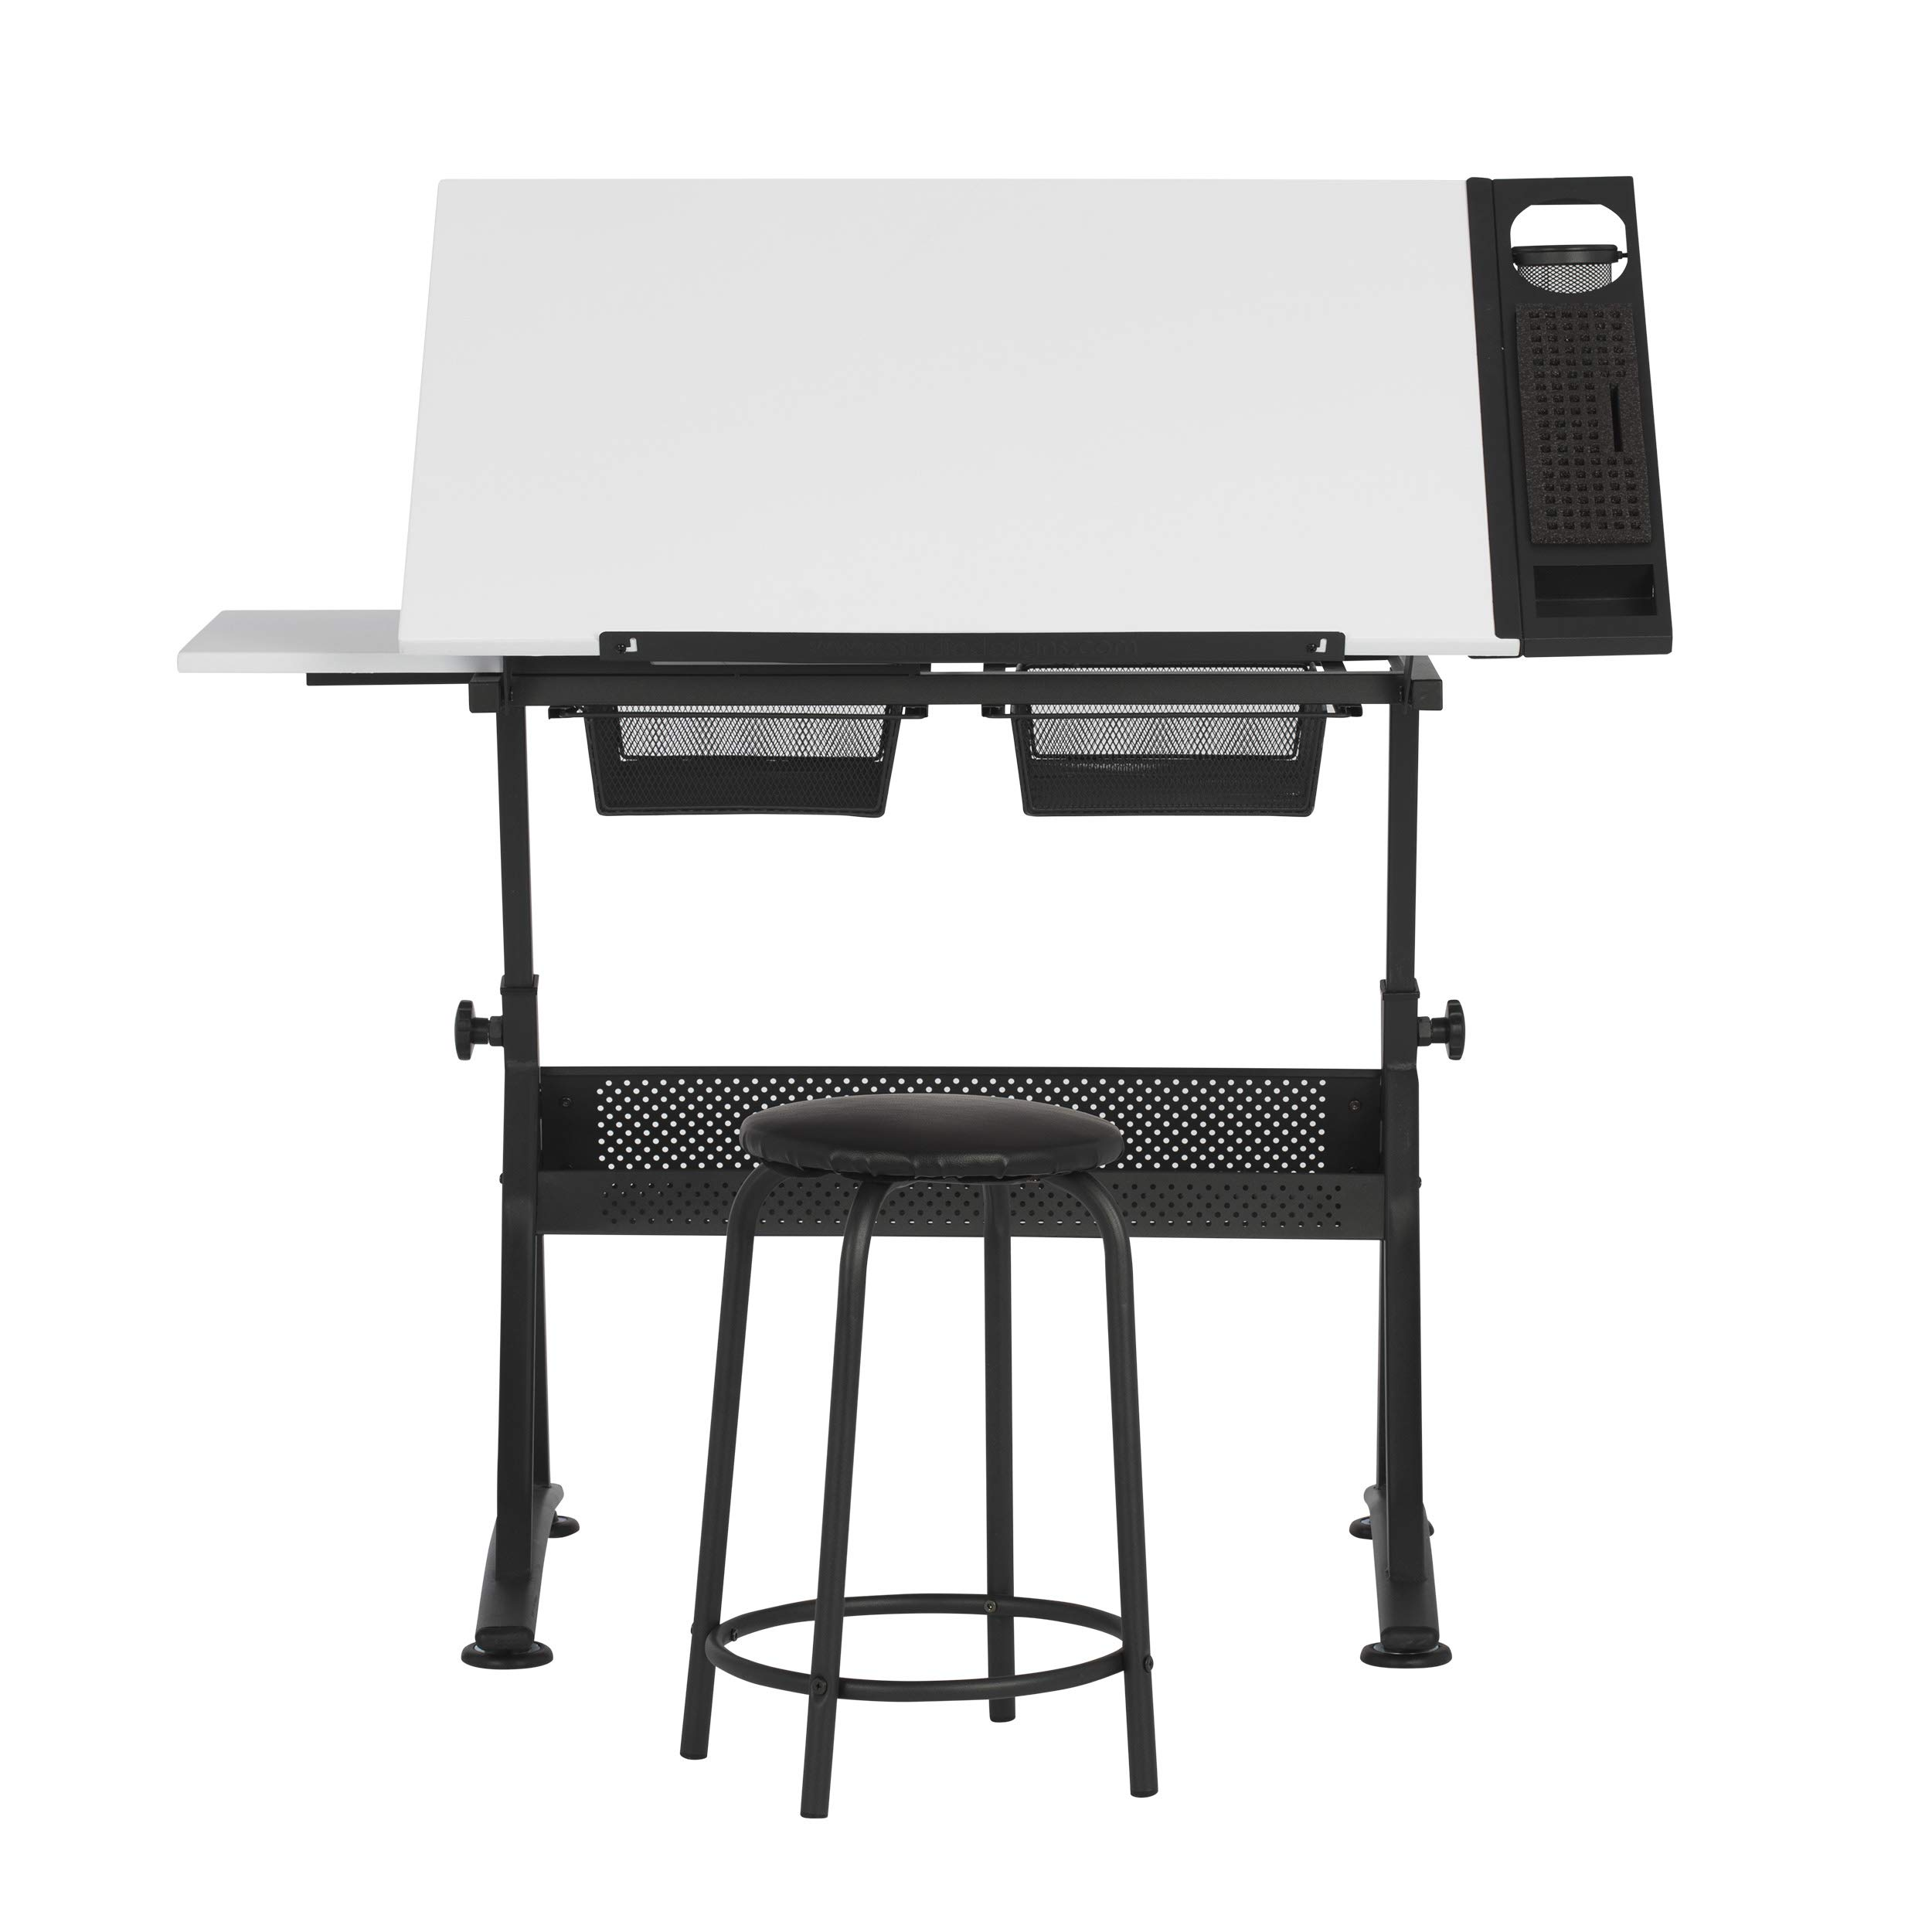 SD STUDIO DESIGNS 47'' W Fusion Craft Center with 24'' Supply Tray, 60 Degree Angle Top and Height Adjustable from 27.75'' – 35.5'' When Flat, Stool and Slide-Out Shelf Included, Charcoal/White